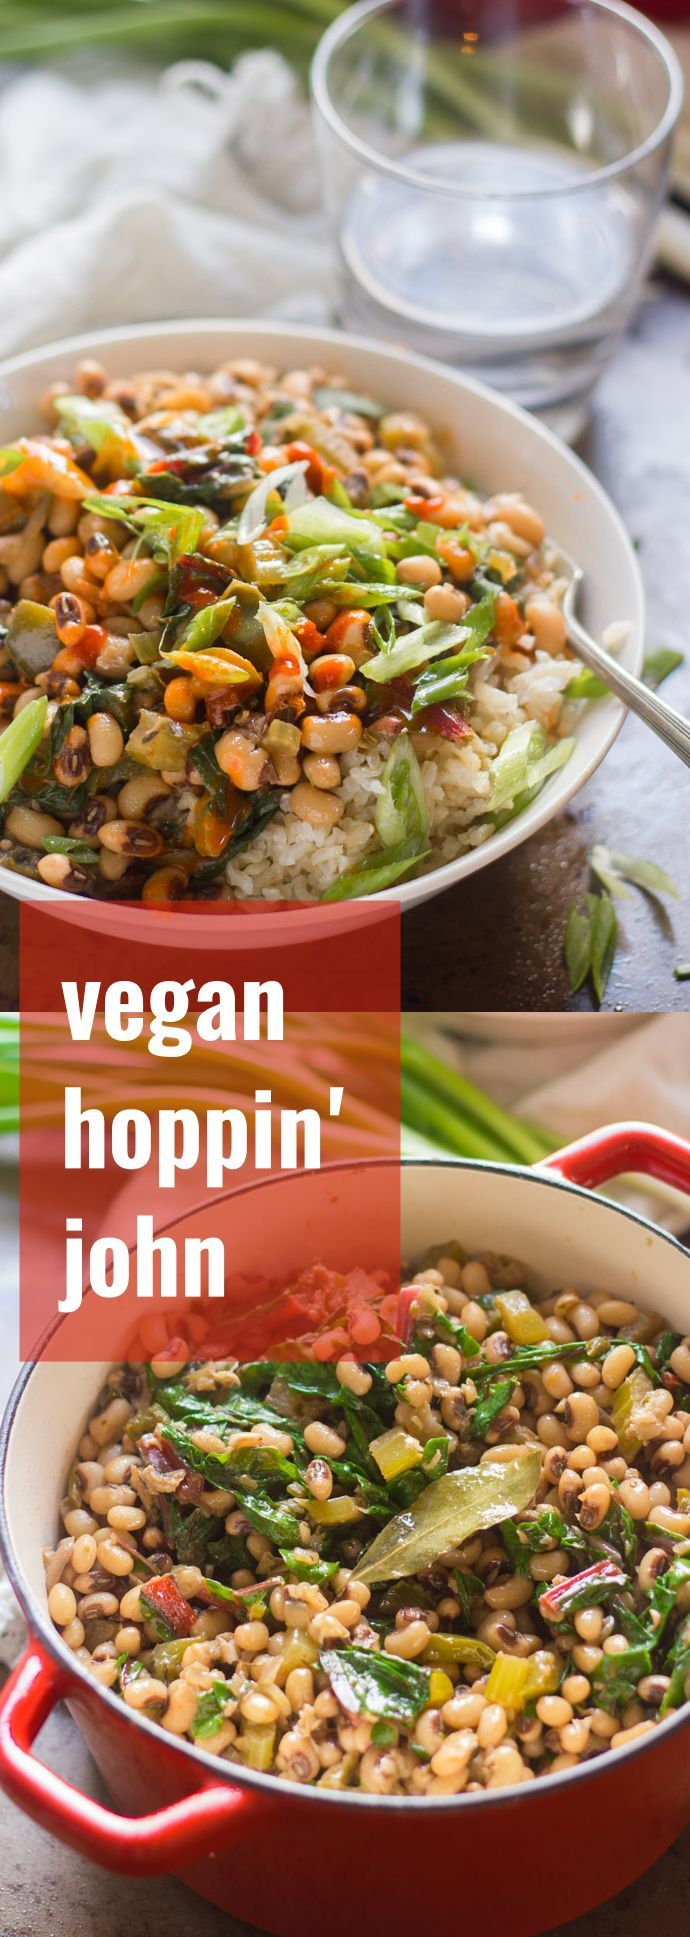 This vegan hoppin' John is made with smoky simmered black-eyed peas, spices and chard. Perfect for New Year's, or pretty much any day of the year!